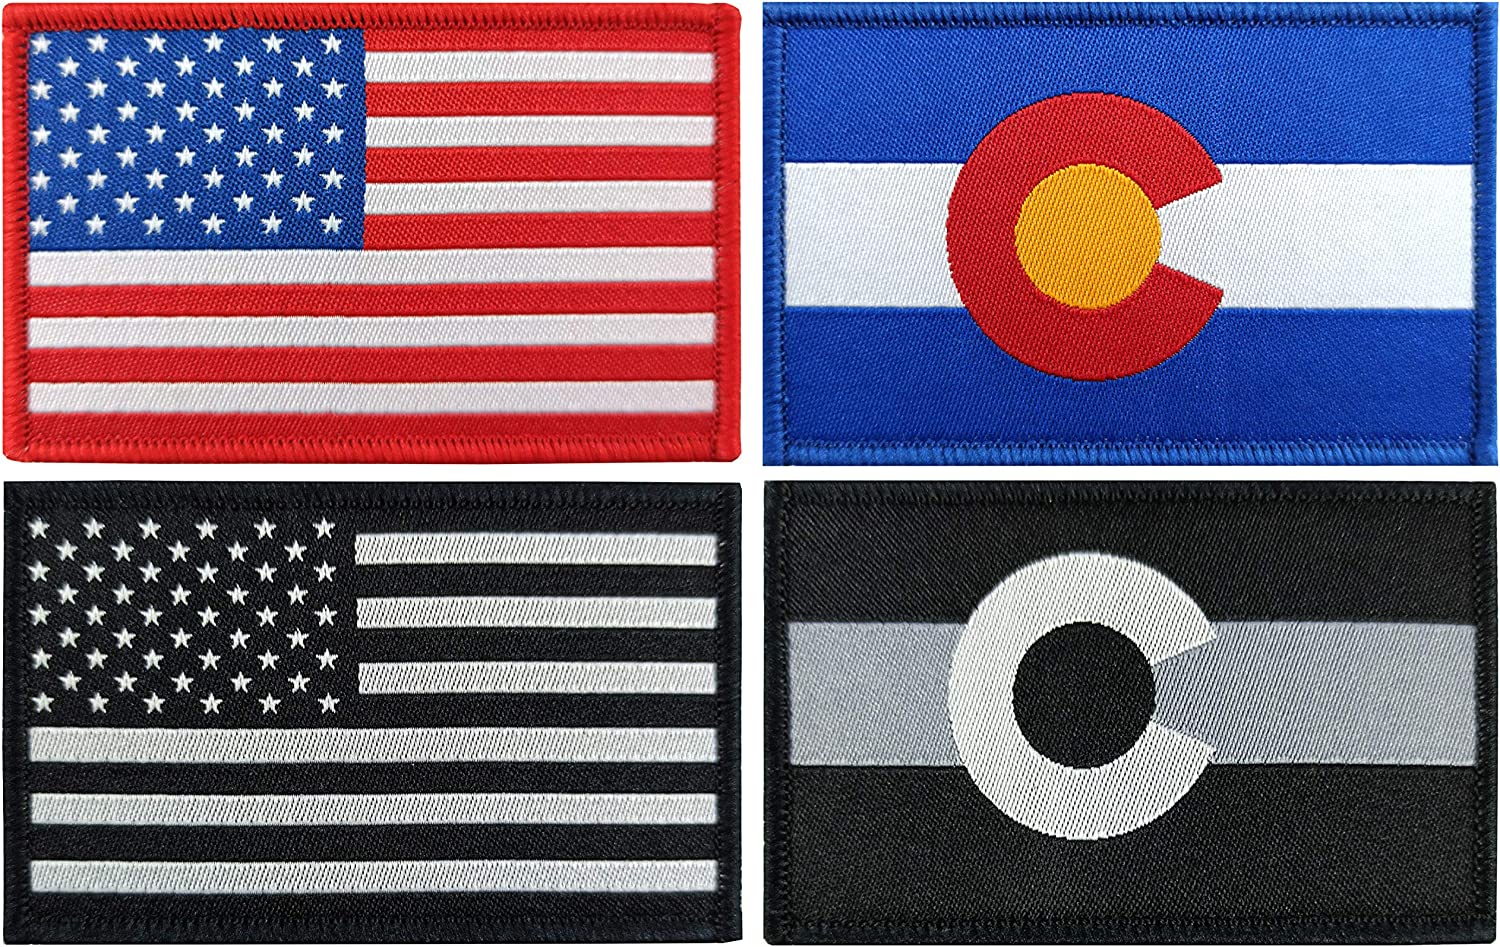 QQSD 4 Pack Free Shipping New Colorado Flag Prid States Super beauty product restock quality top! Patch Tactical Flags